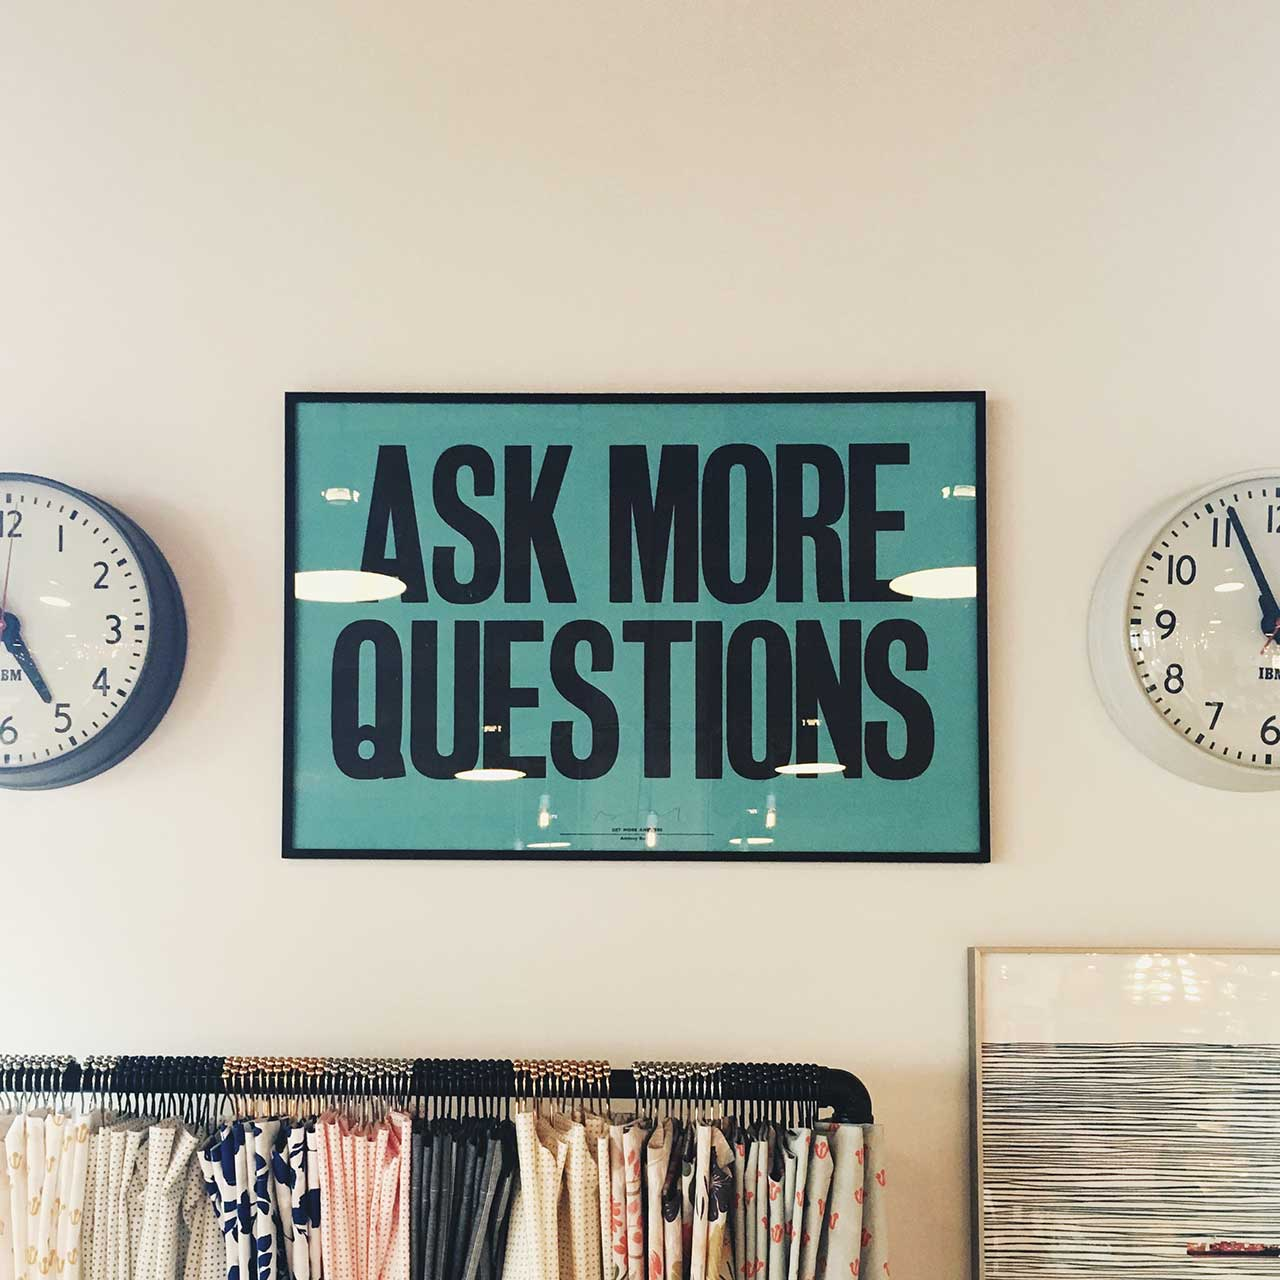 Ask More Questions: 'A poet is only completely successful if he has awakened in the mind of the reader an echo of his or her own emotional experiences, who may not themselves have been able to put their feelings into words.'